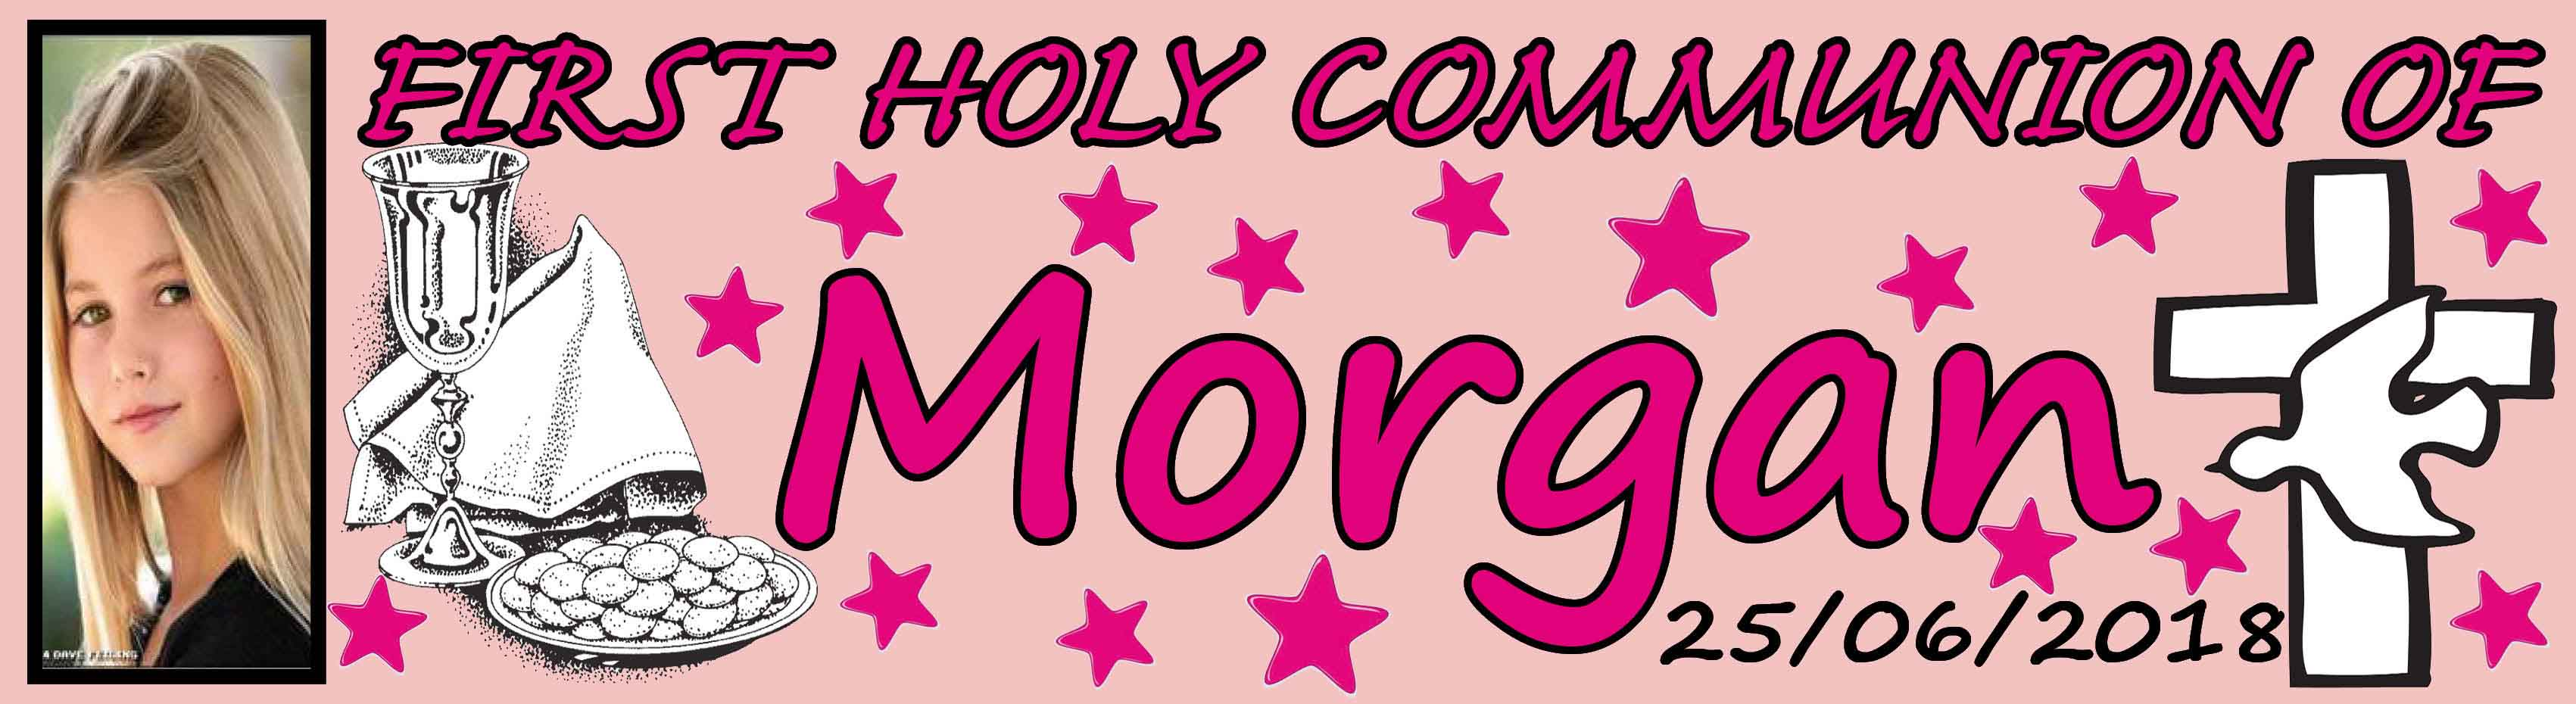 1st Holy Communion Banner 7